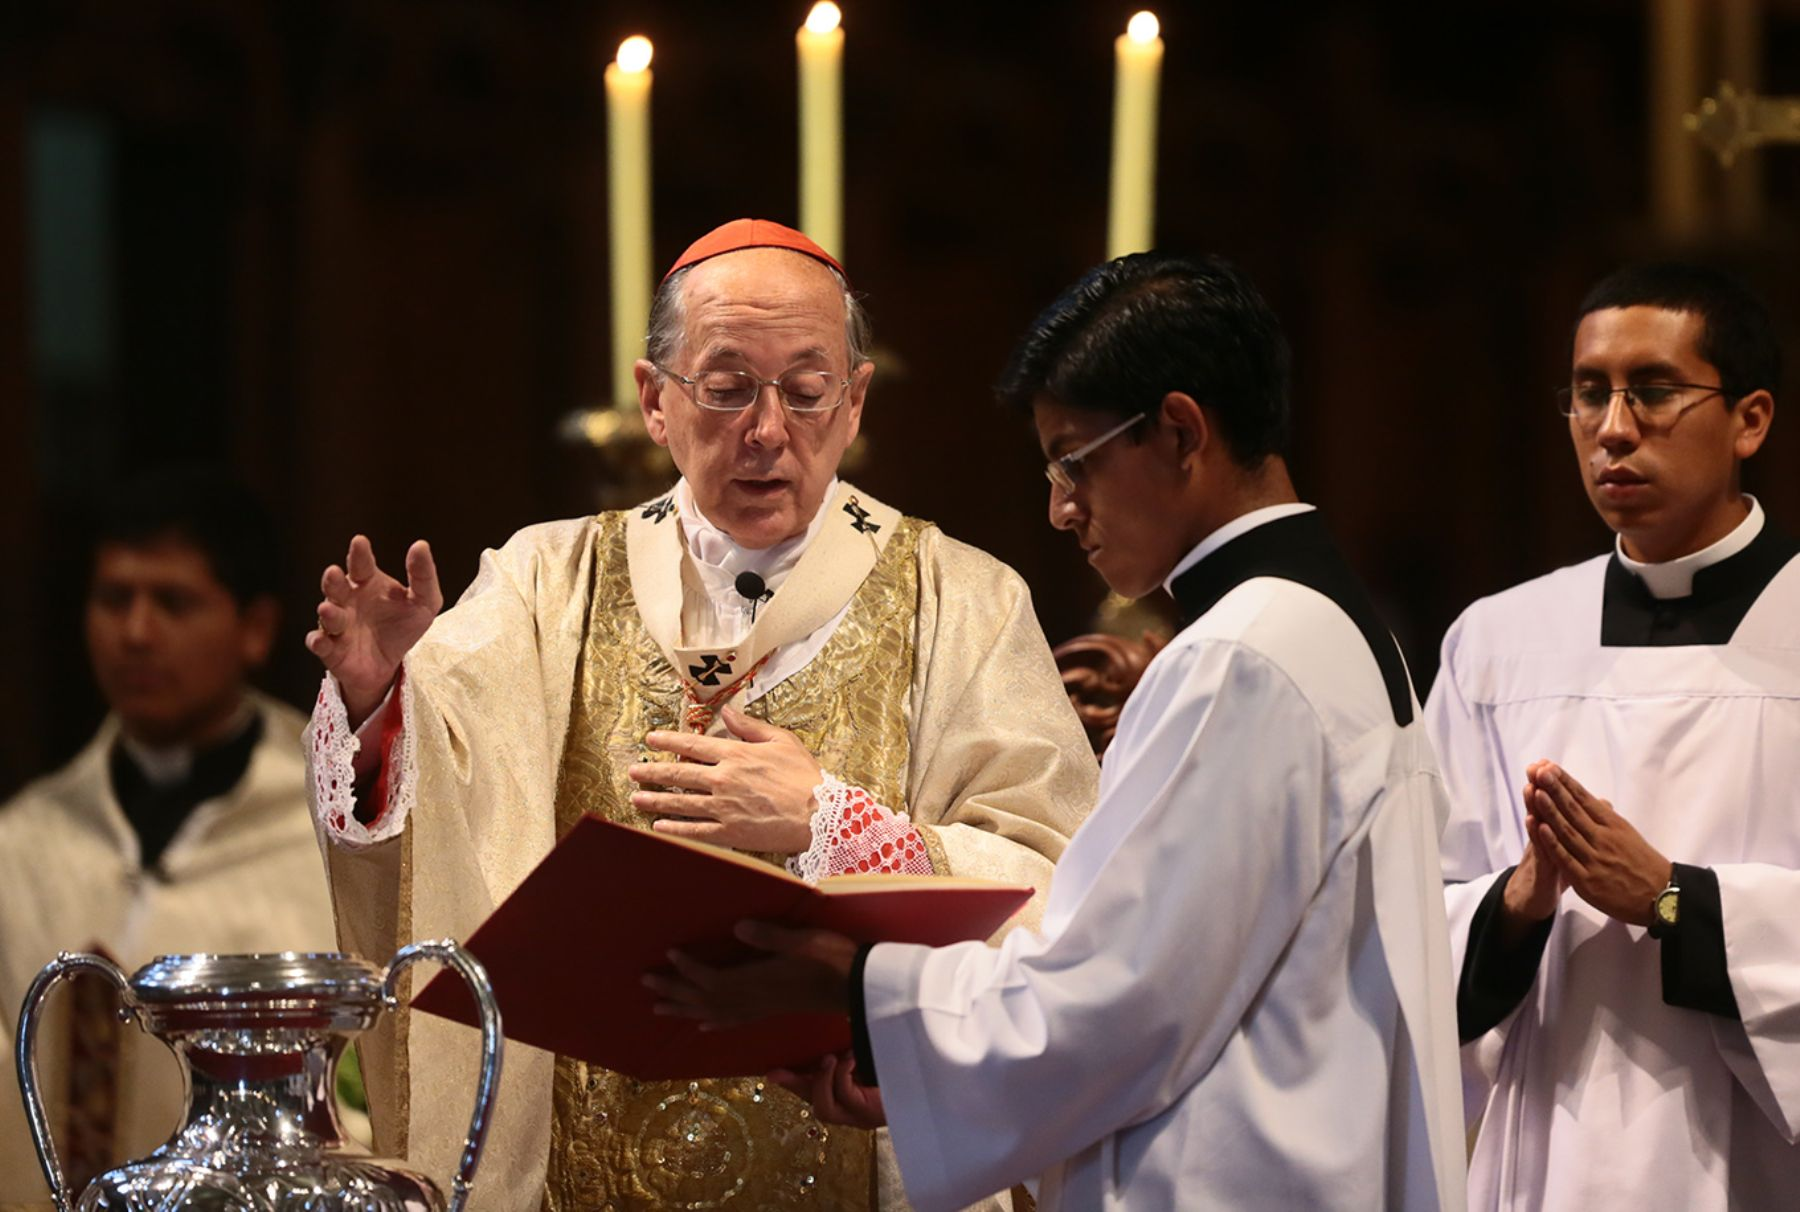 President Humala attends Mass and Te Deum at Lima's